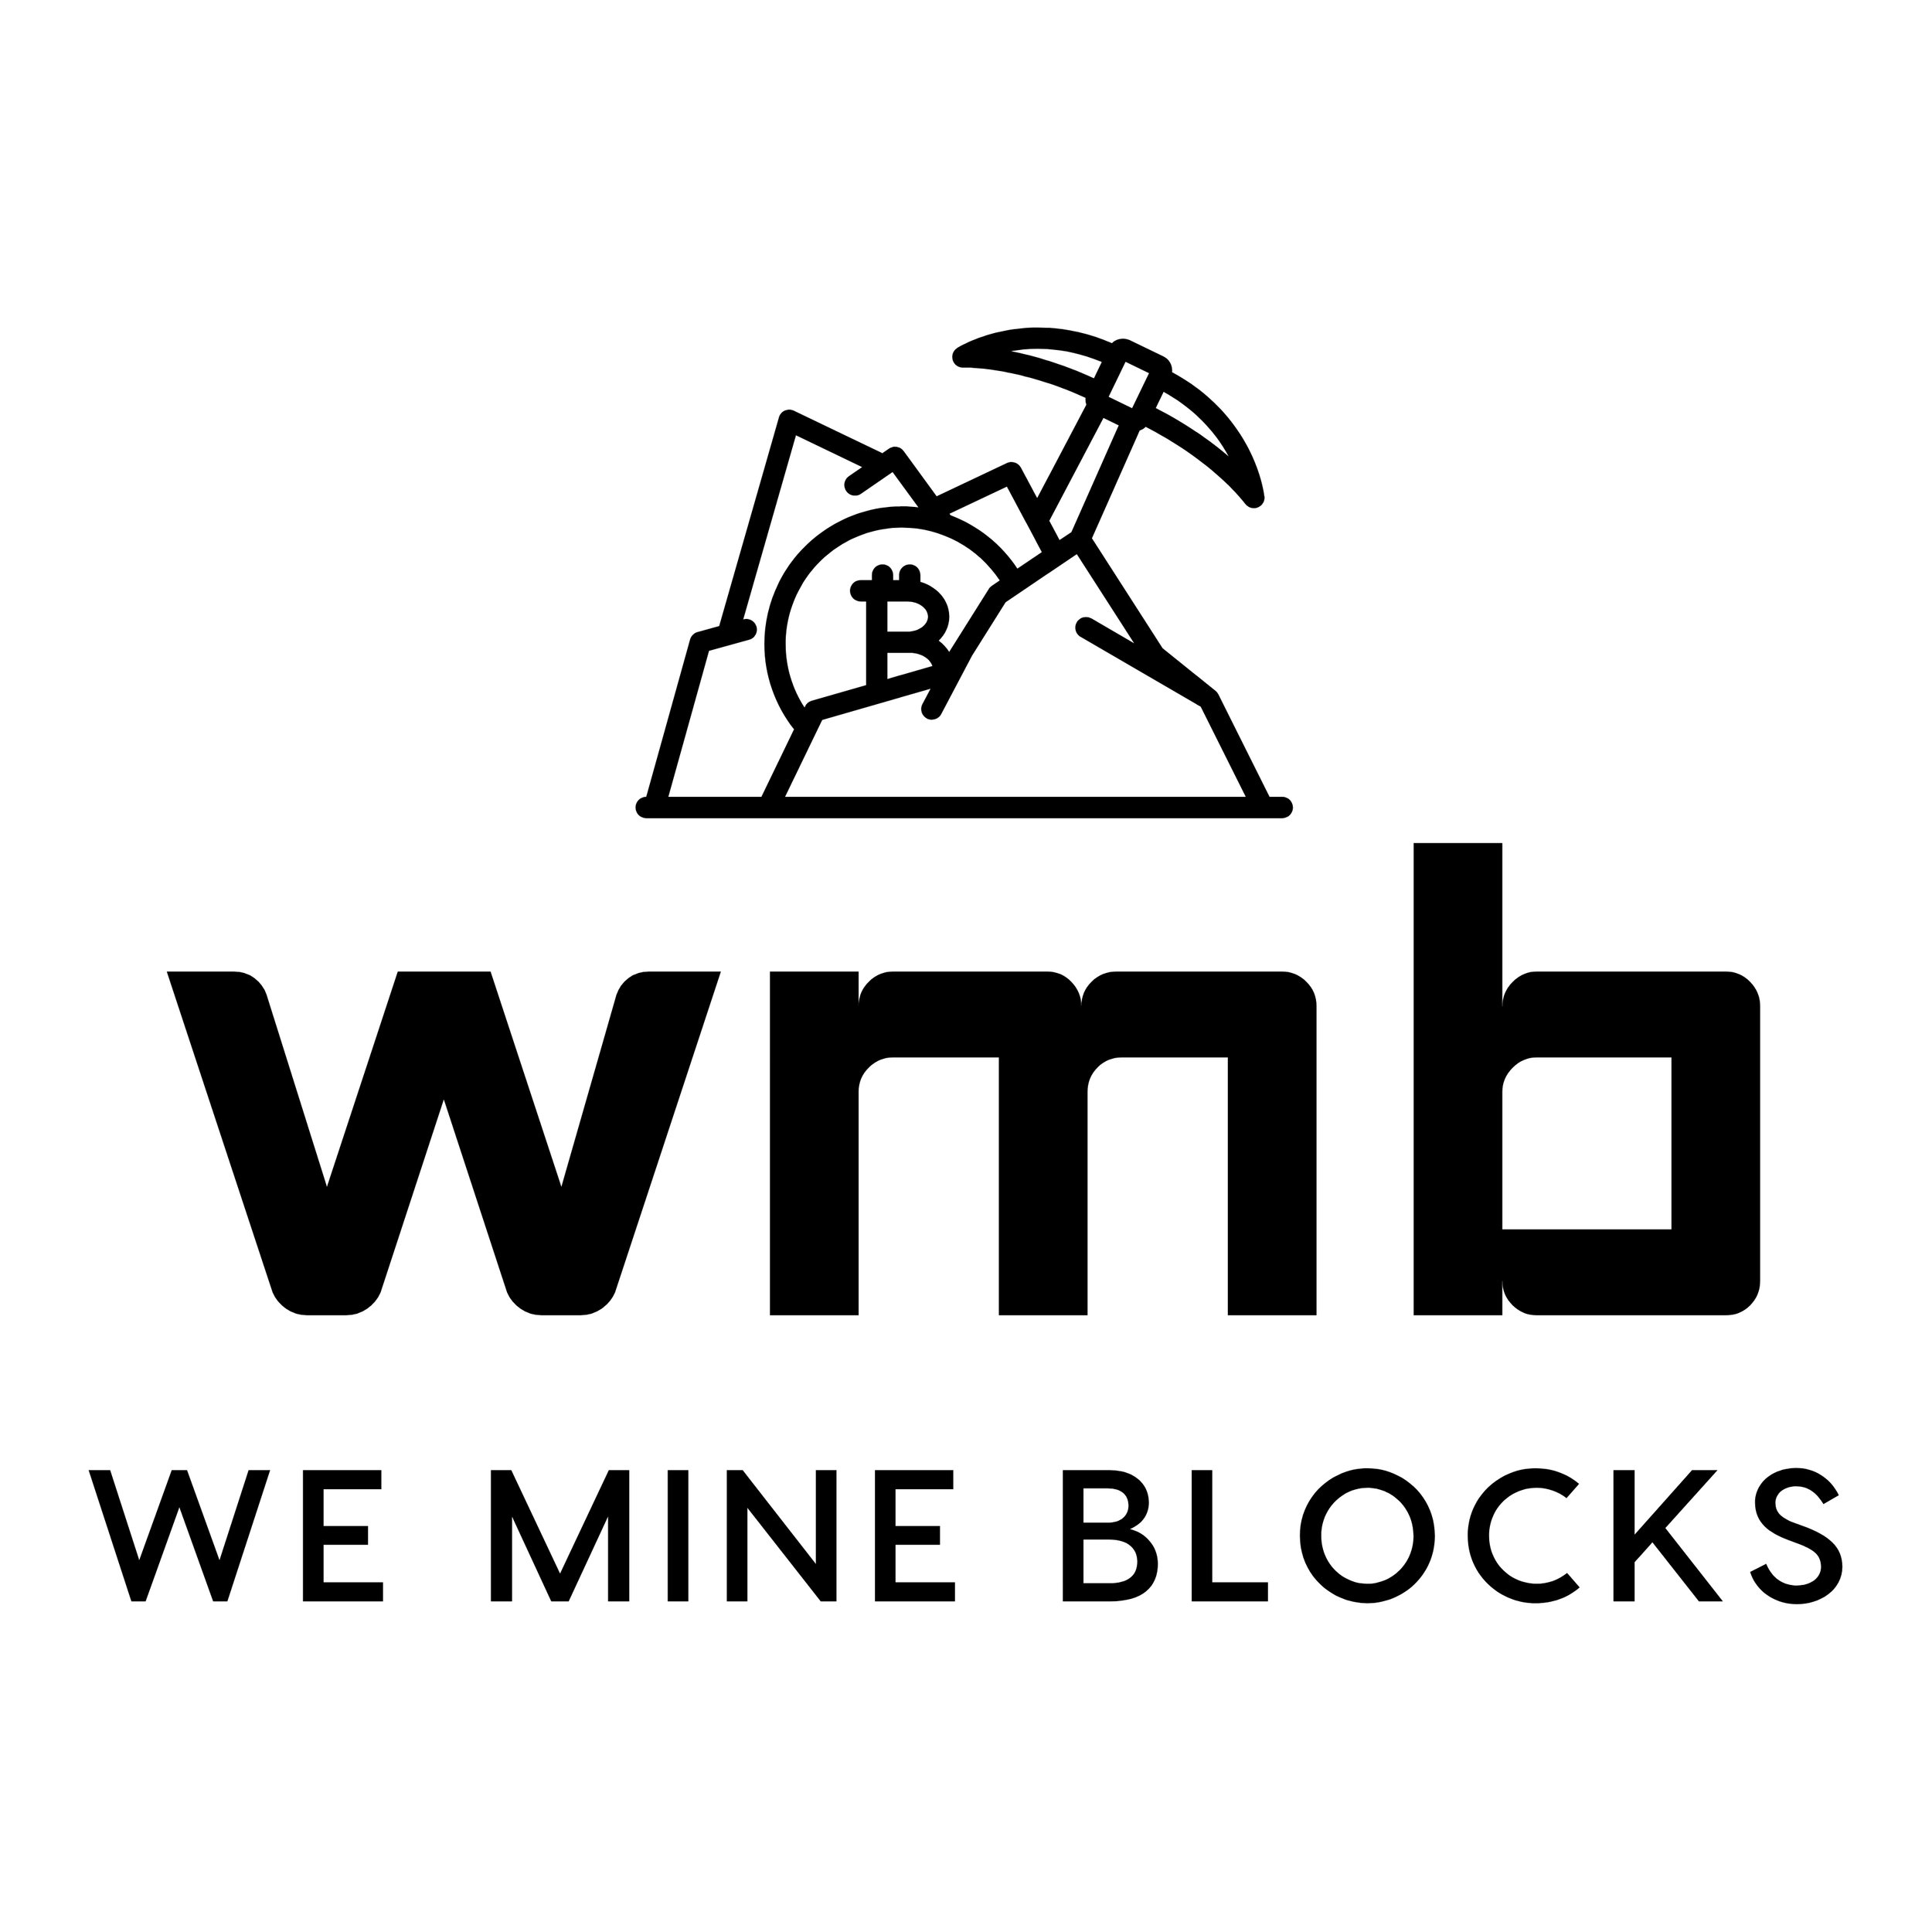 We Mine Blocks